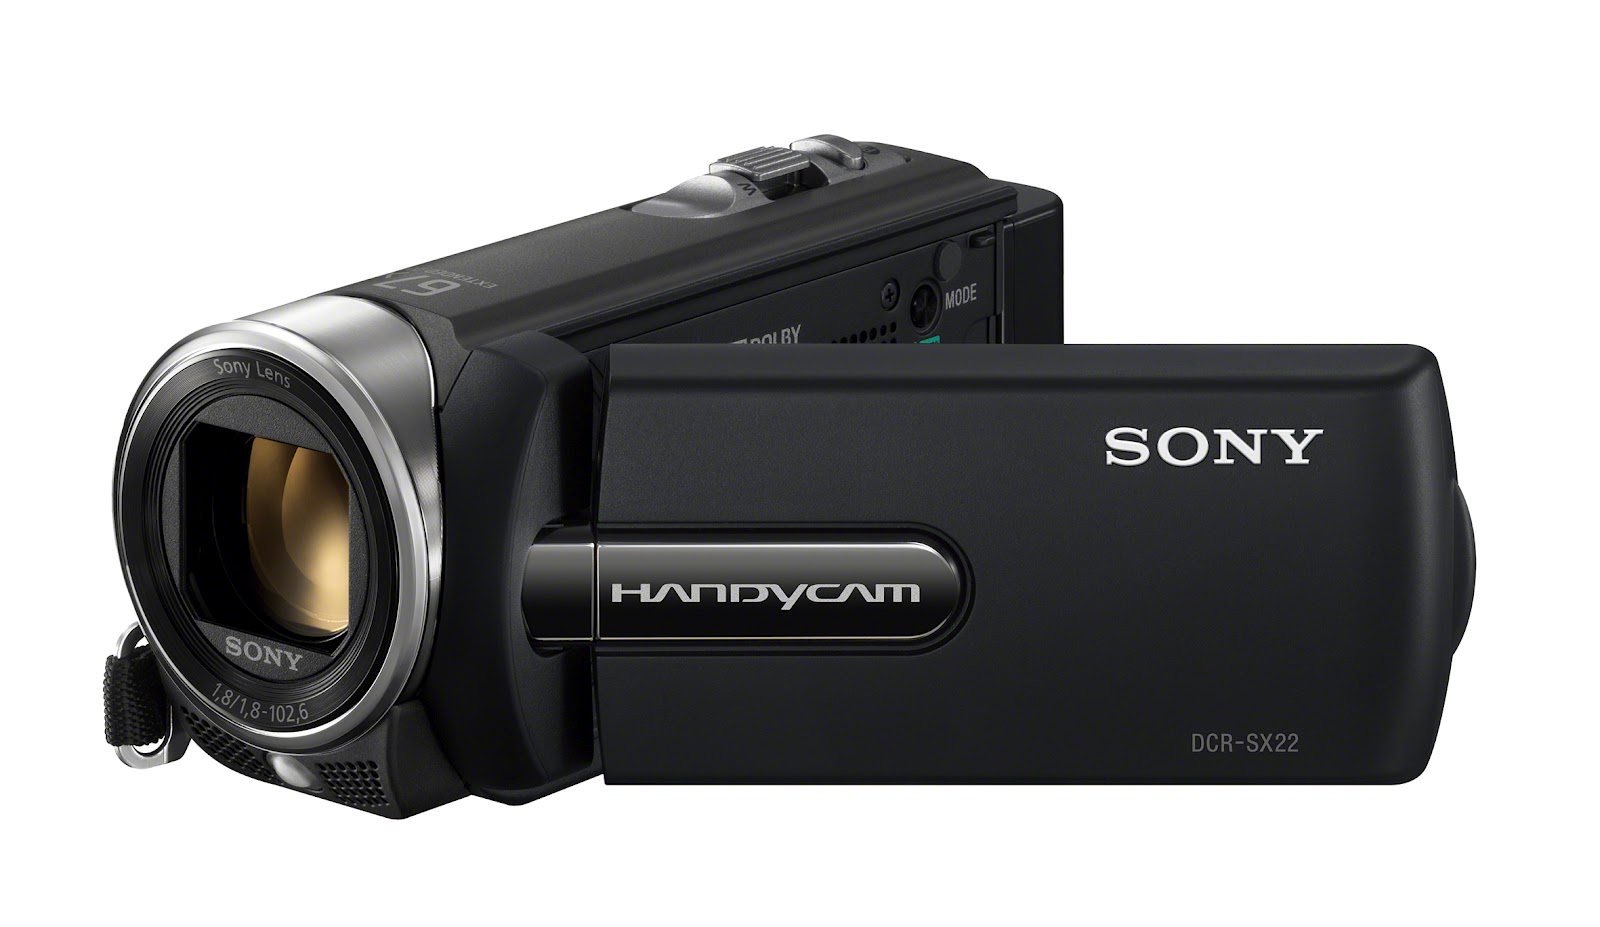 Sony digital handycam dcr trv14e usb driver found sony all items been previously ie dcr trv150 dcr trv250 this camera purchased approx 1980 recorded card not up new tech buzz words fandeluxe Gallery